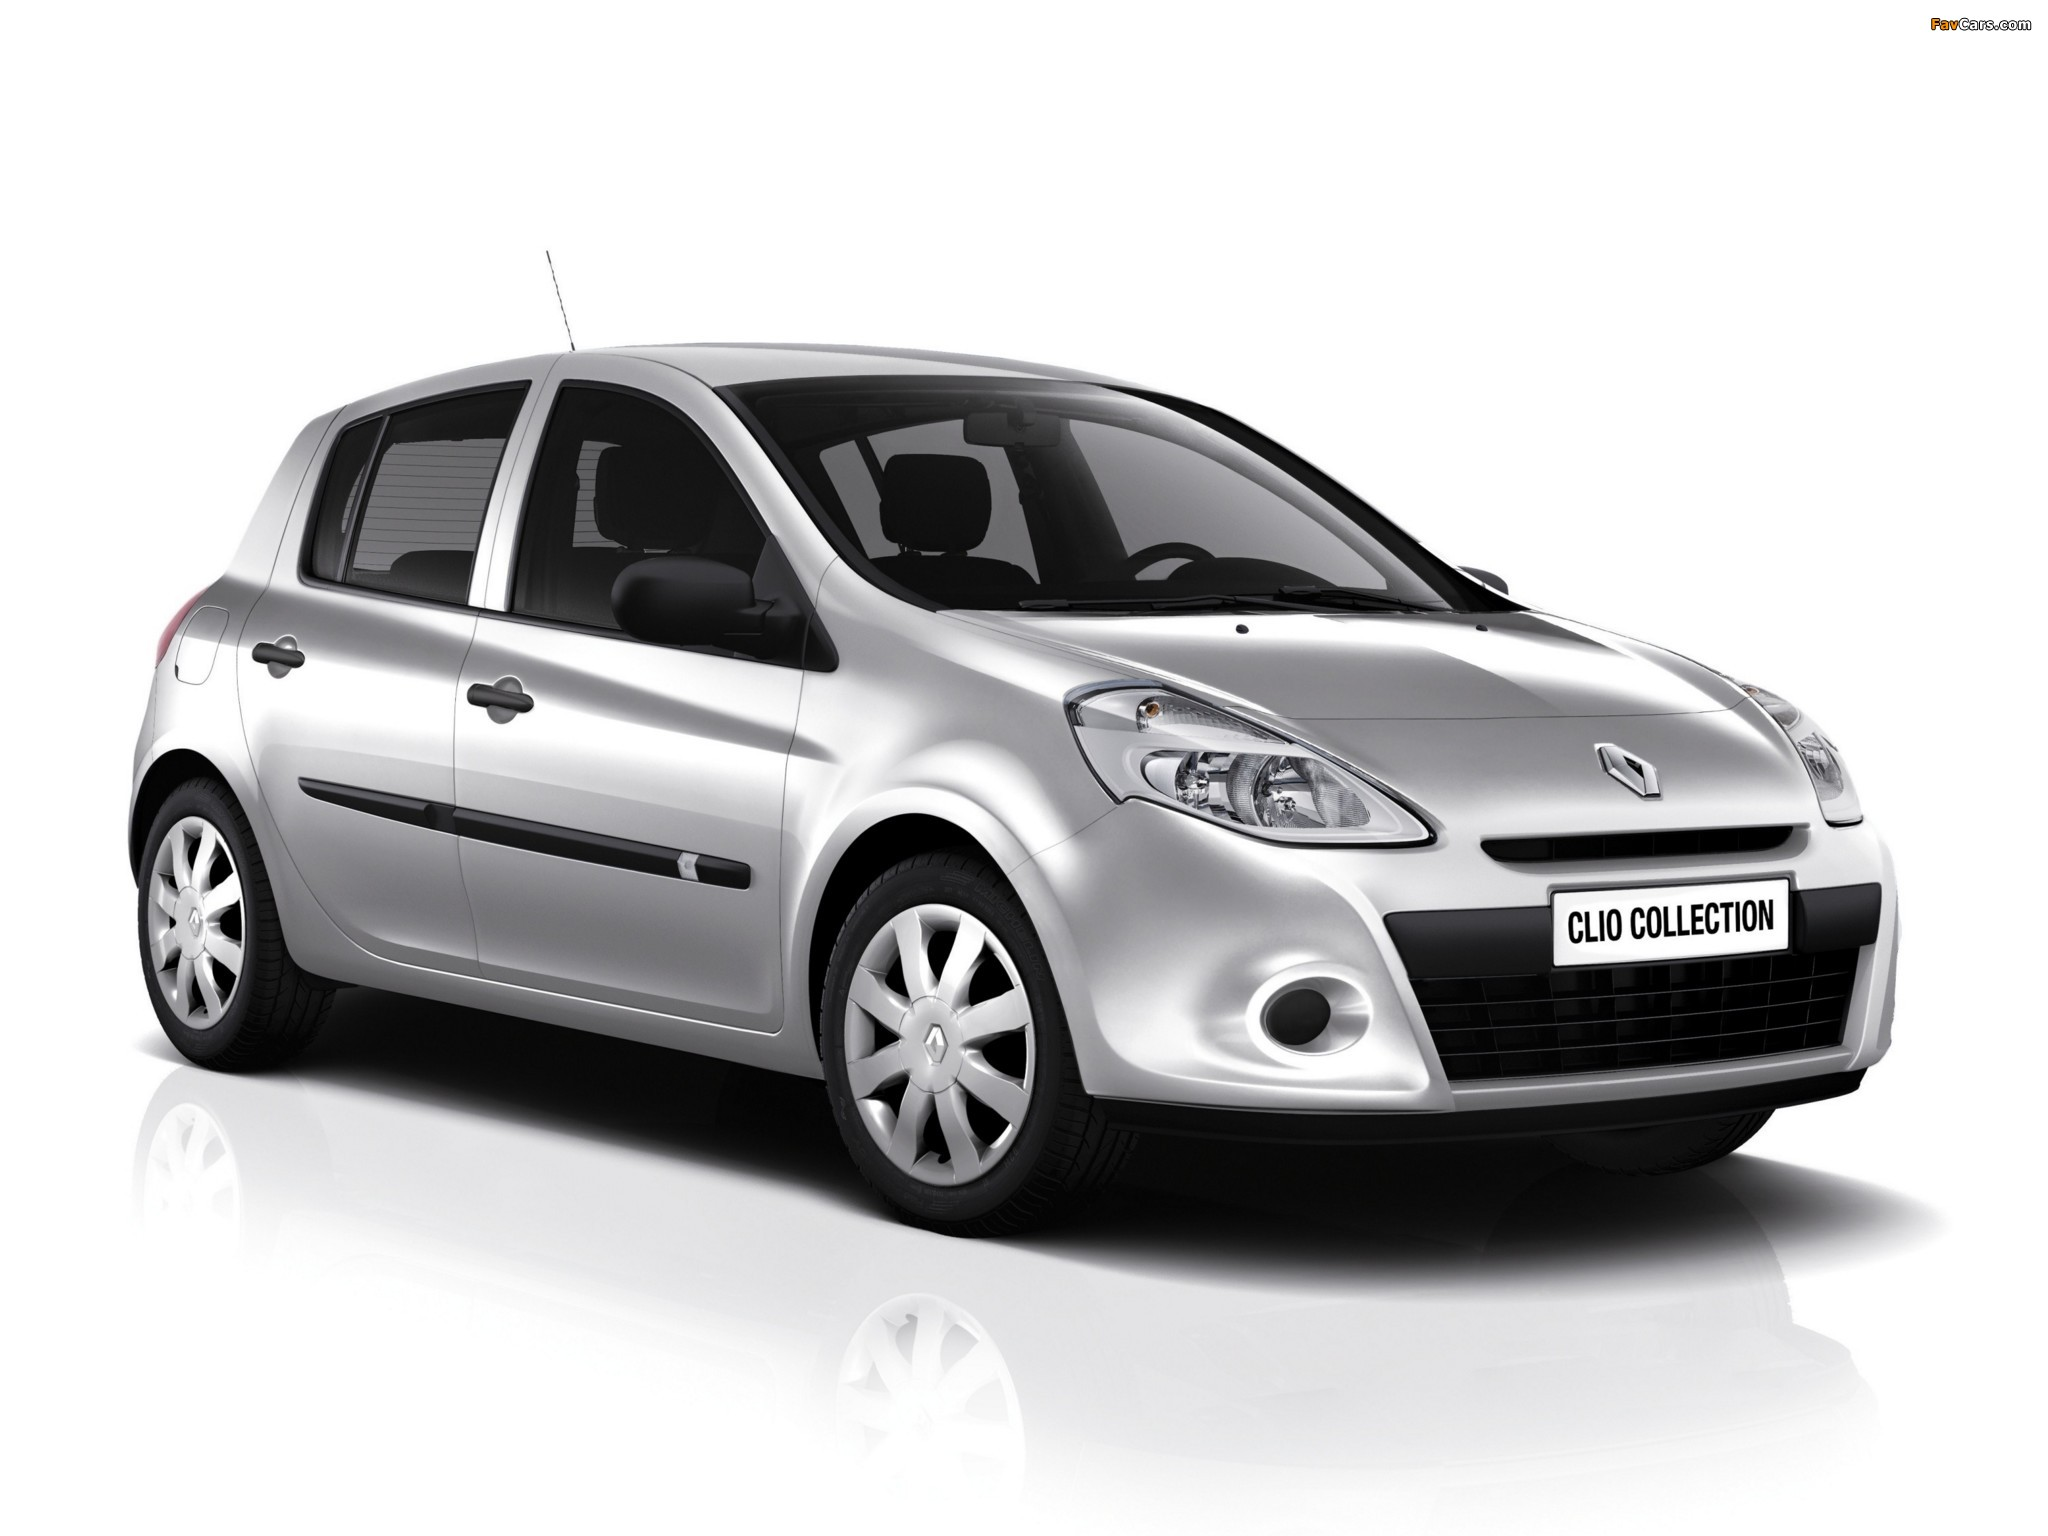 Renault Clio Collection 2012 wallpapers (2048 x 1536)